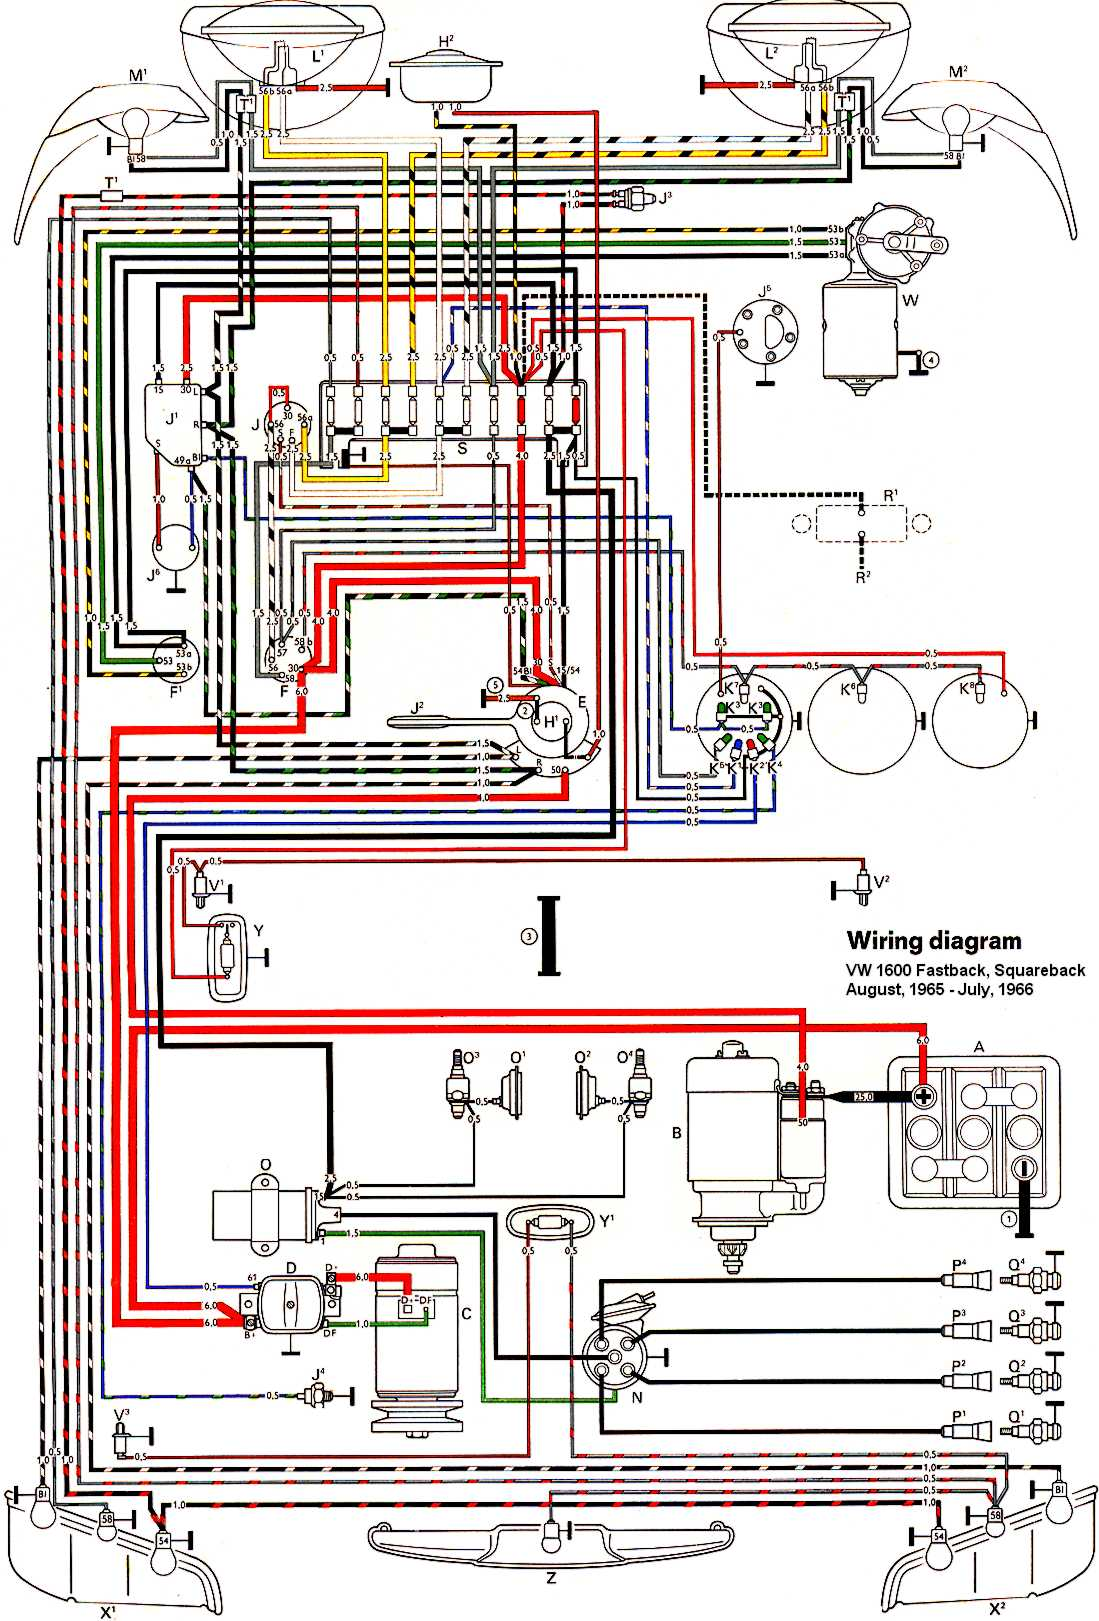 type3_1600_66 thesamba com type 3 wiring diagrams find wiring diagram for 87 ford f 150 at bayanpartner.co